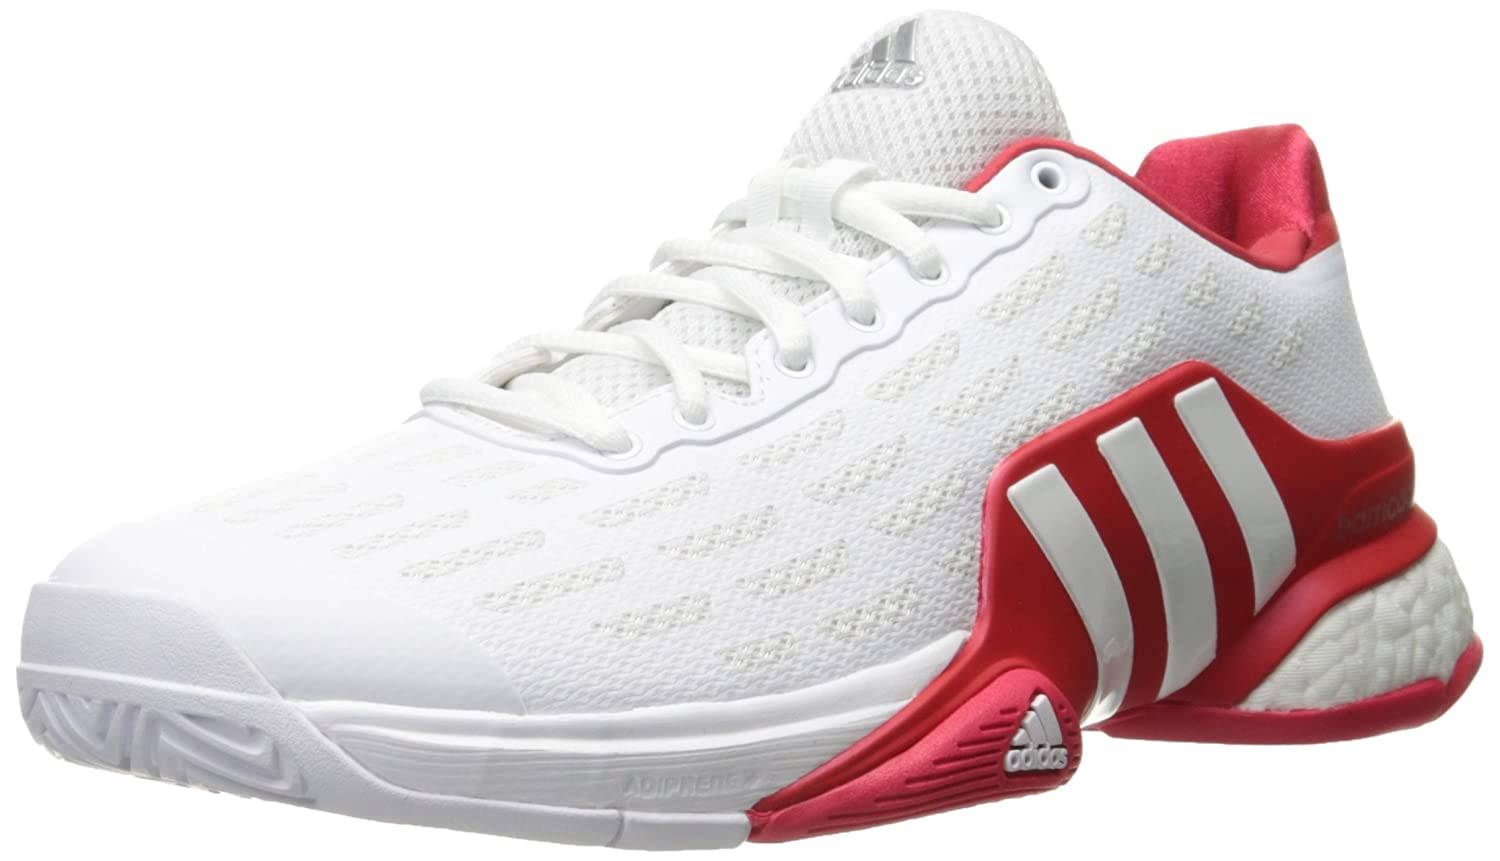 adidas Performance Men's Barricade 2016 Boost Tennis Shoes B019DF8IWY 10 D(M) US|White/White/Ray Red Fabric